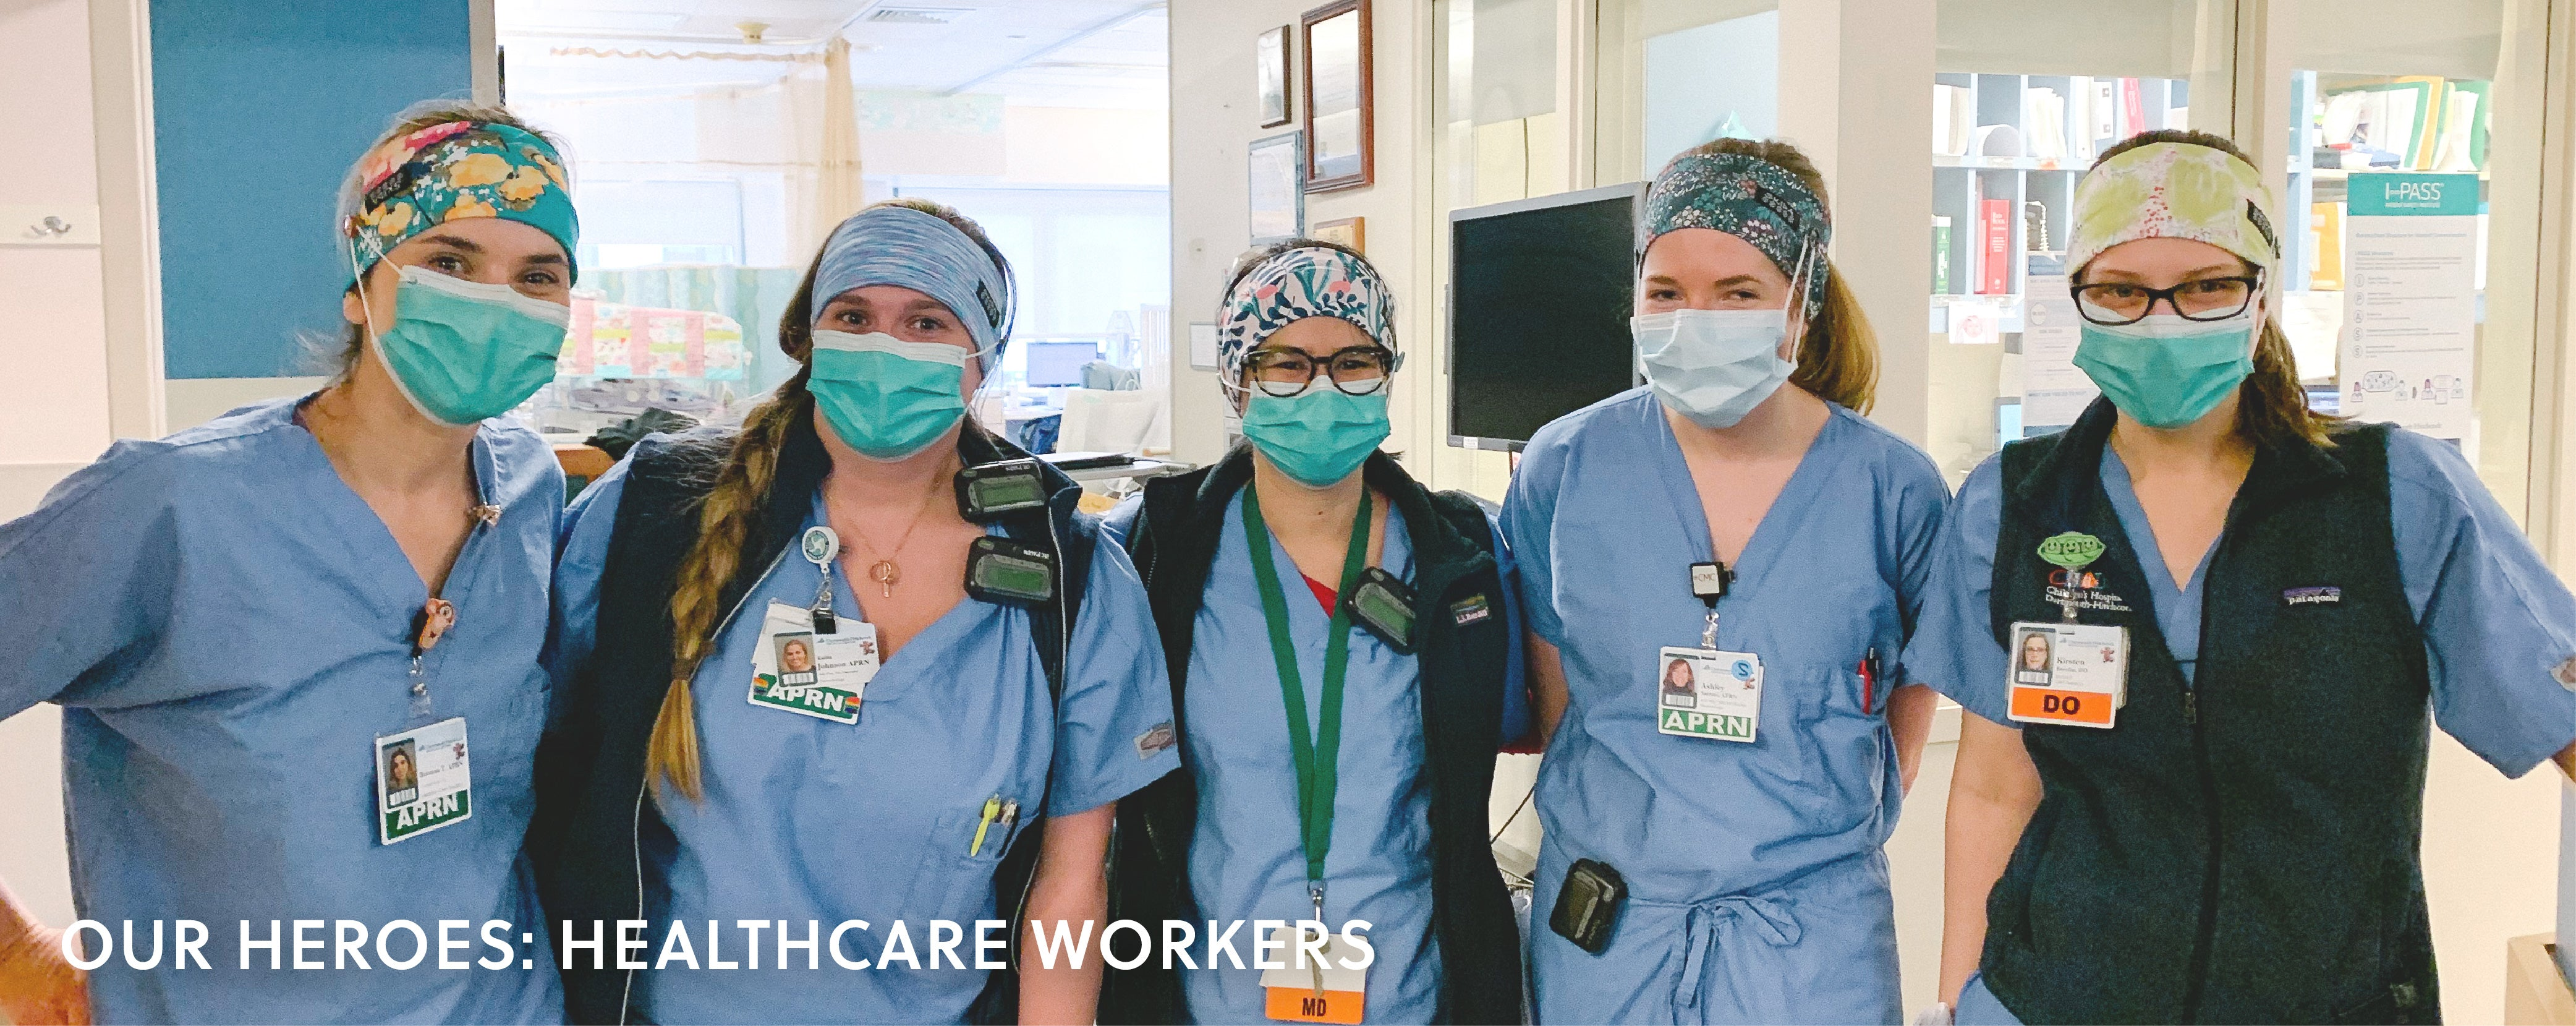 Thank you healthcare workers!